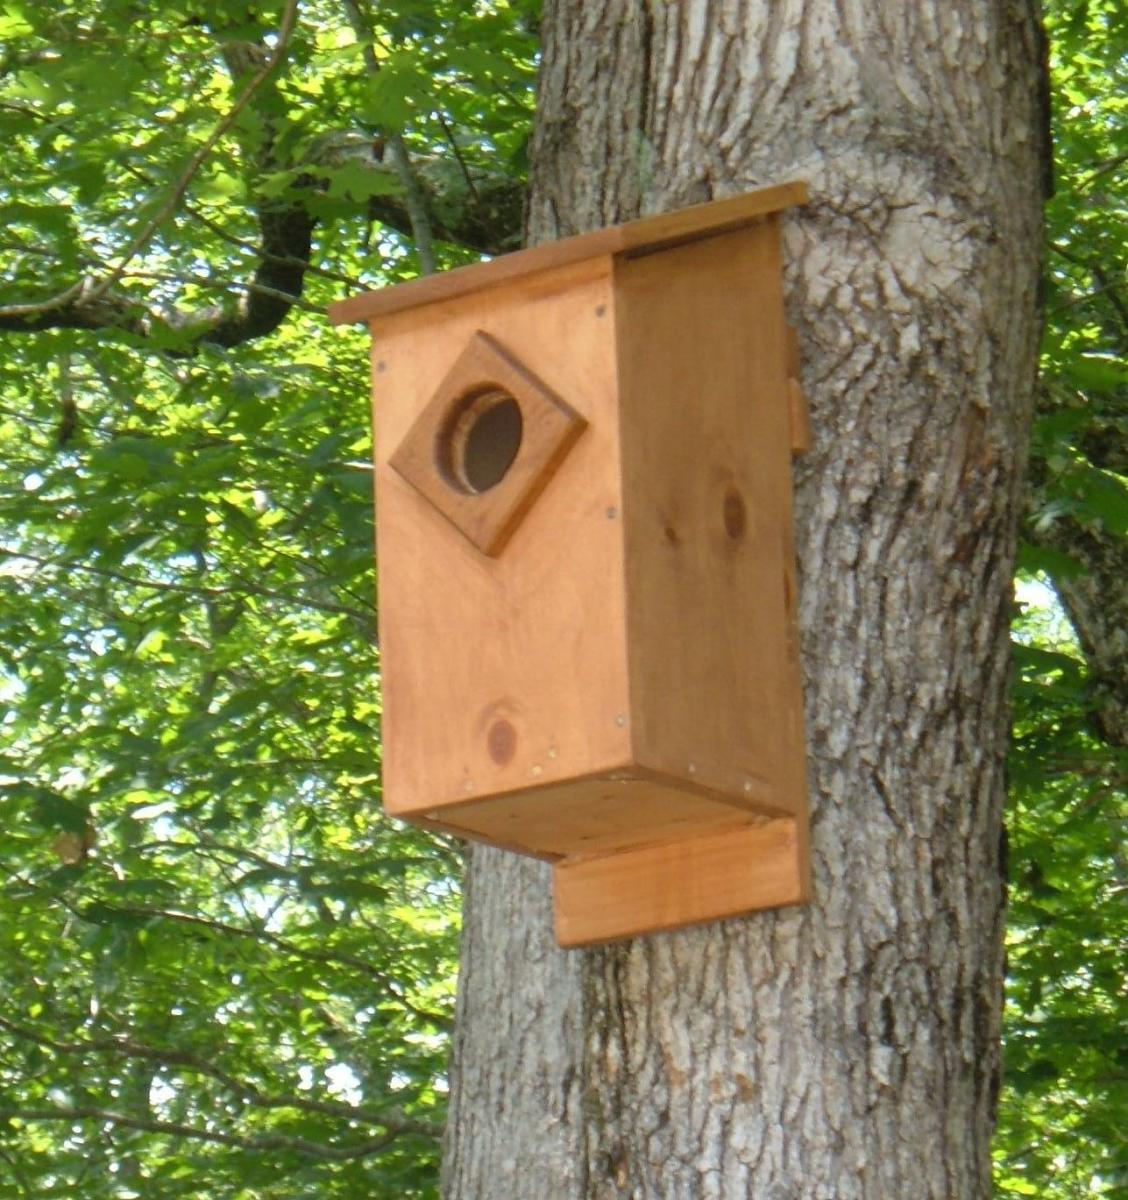 Screech Owl House Plans How To Build A Screech Owl Box